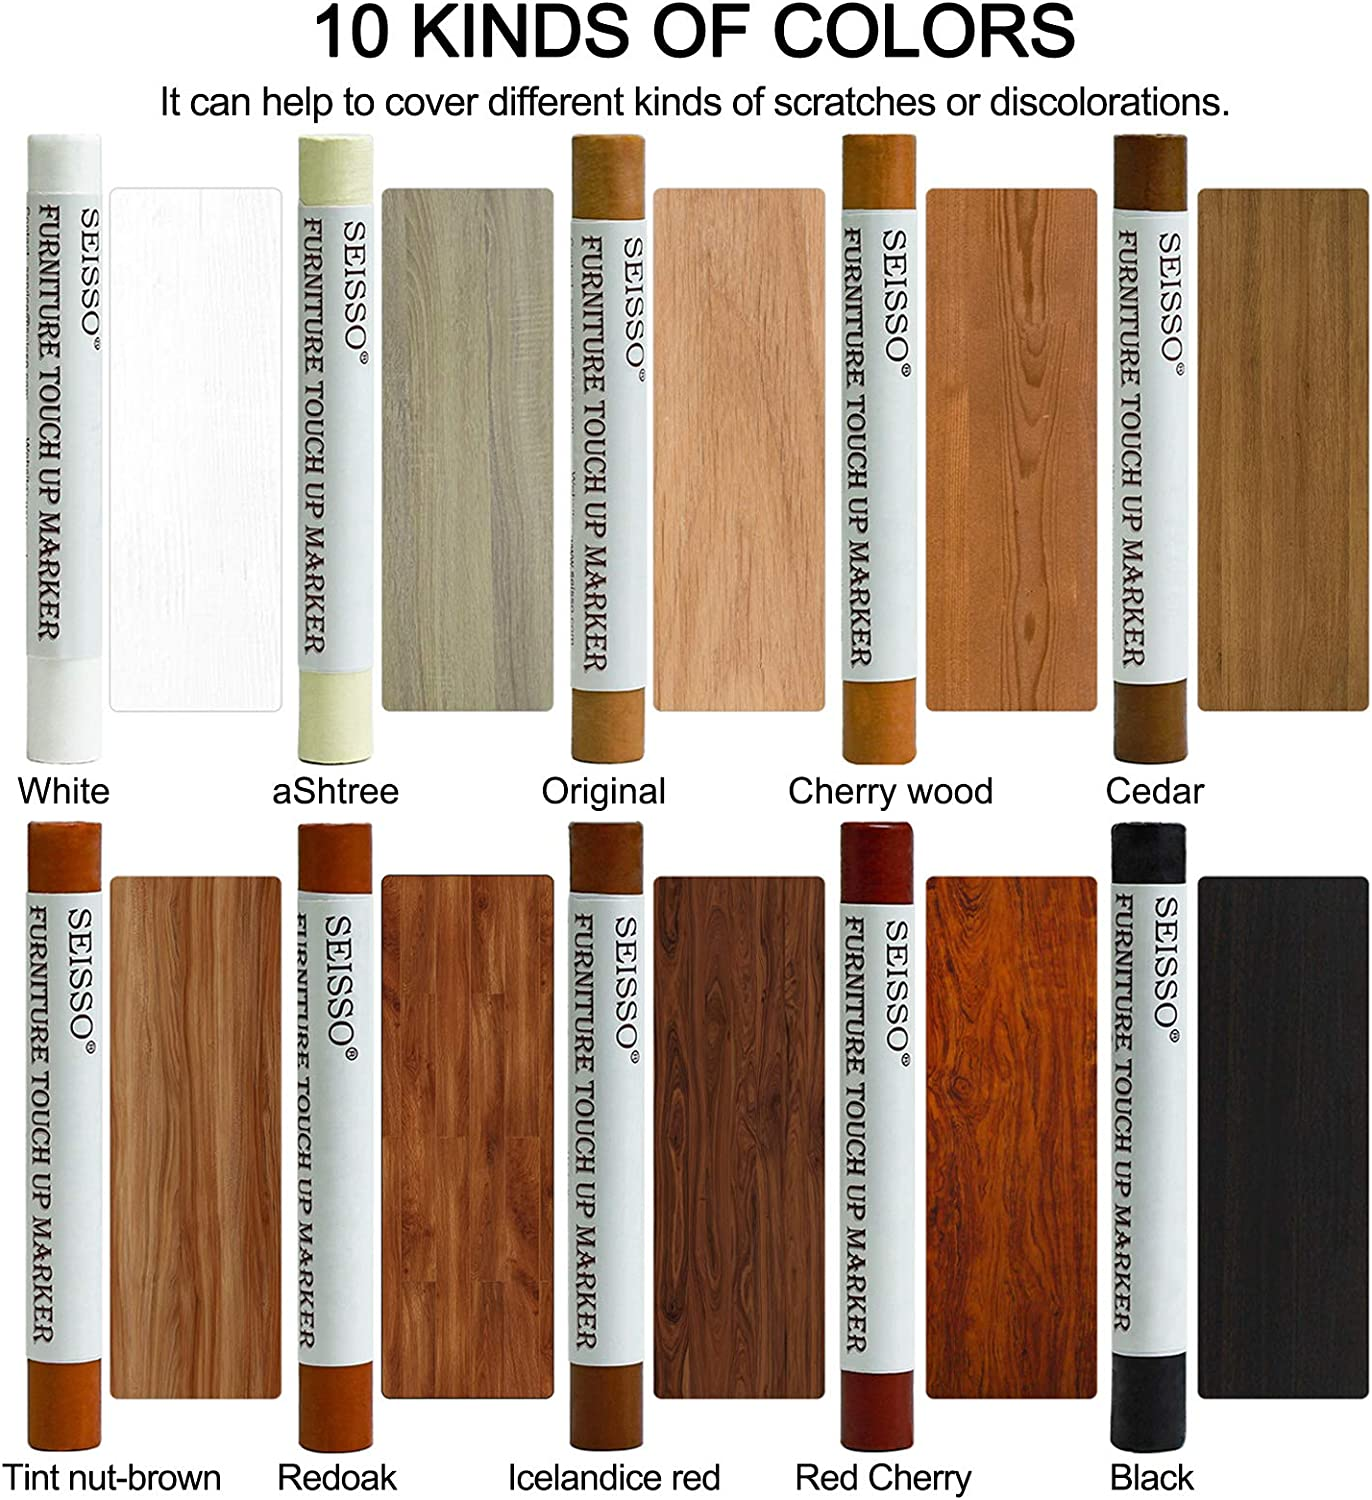 Wood Filler Sticks Touch Up Repair Kit Wood Furniture Scratches Restore Sticks and Markers for Hardwood Oak Wood Floors, Stains,